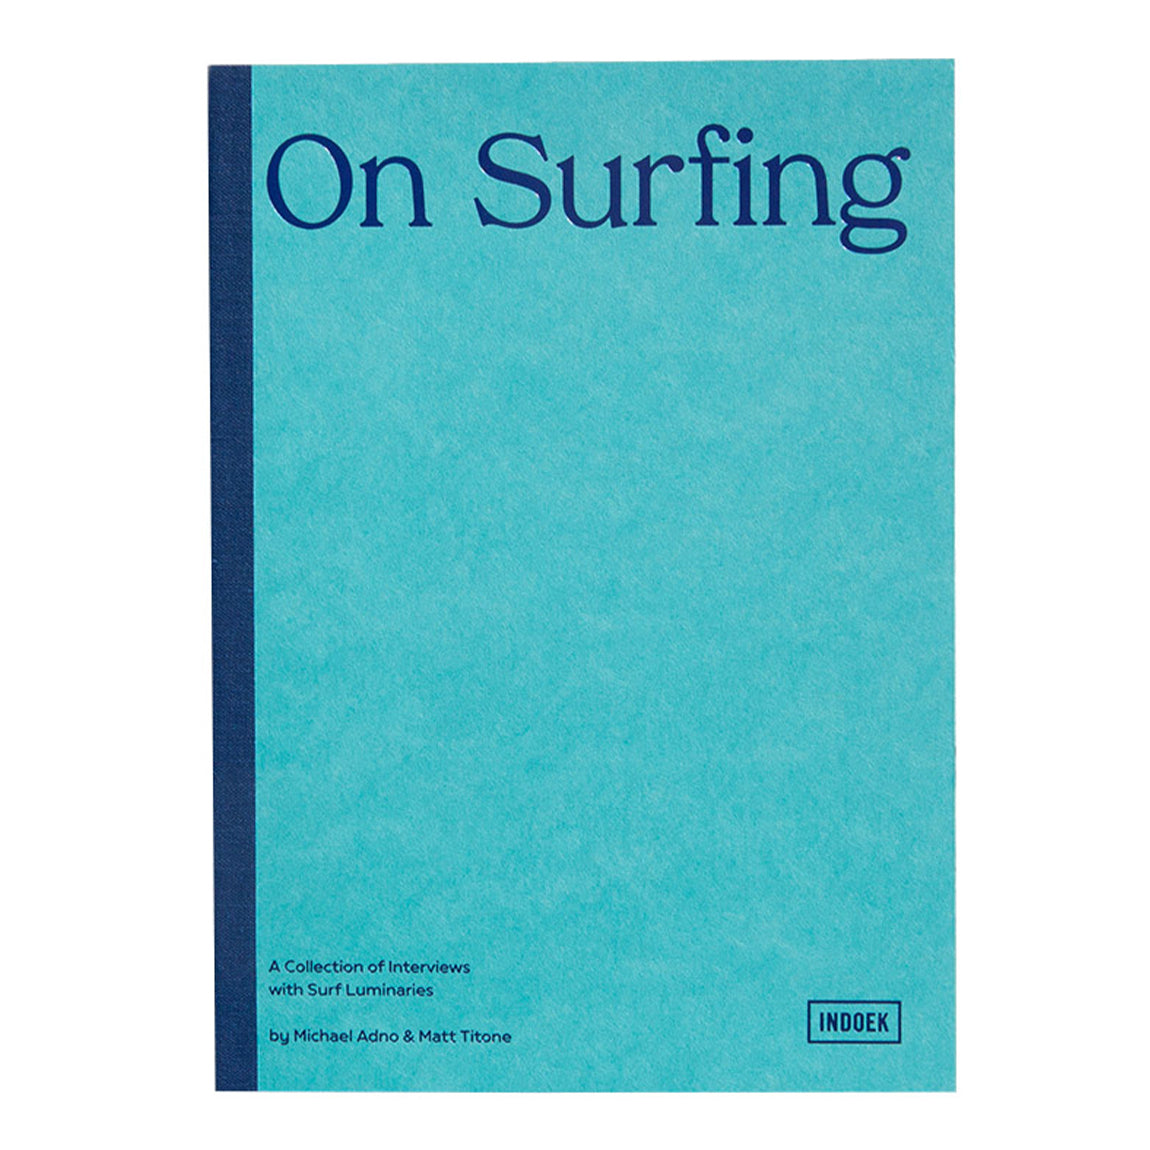 ON SURFING